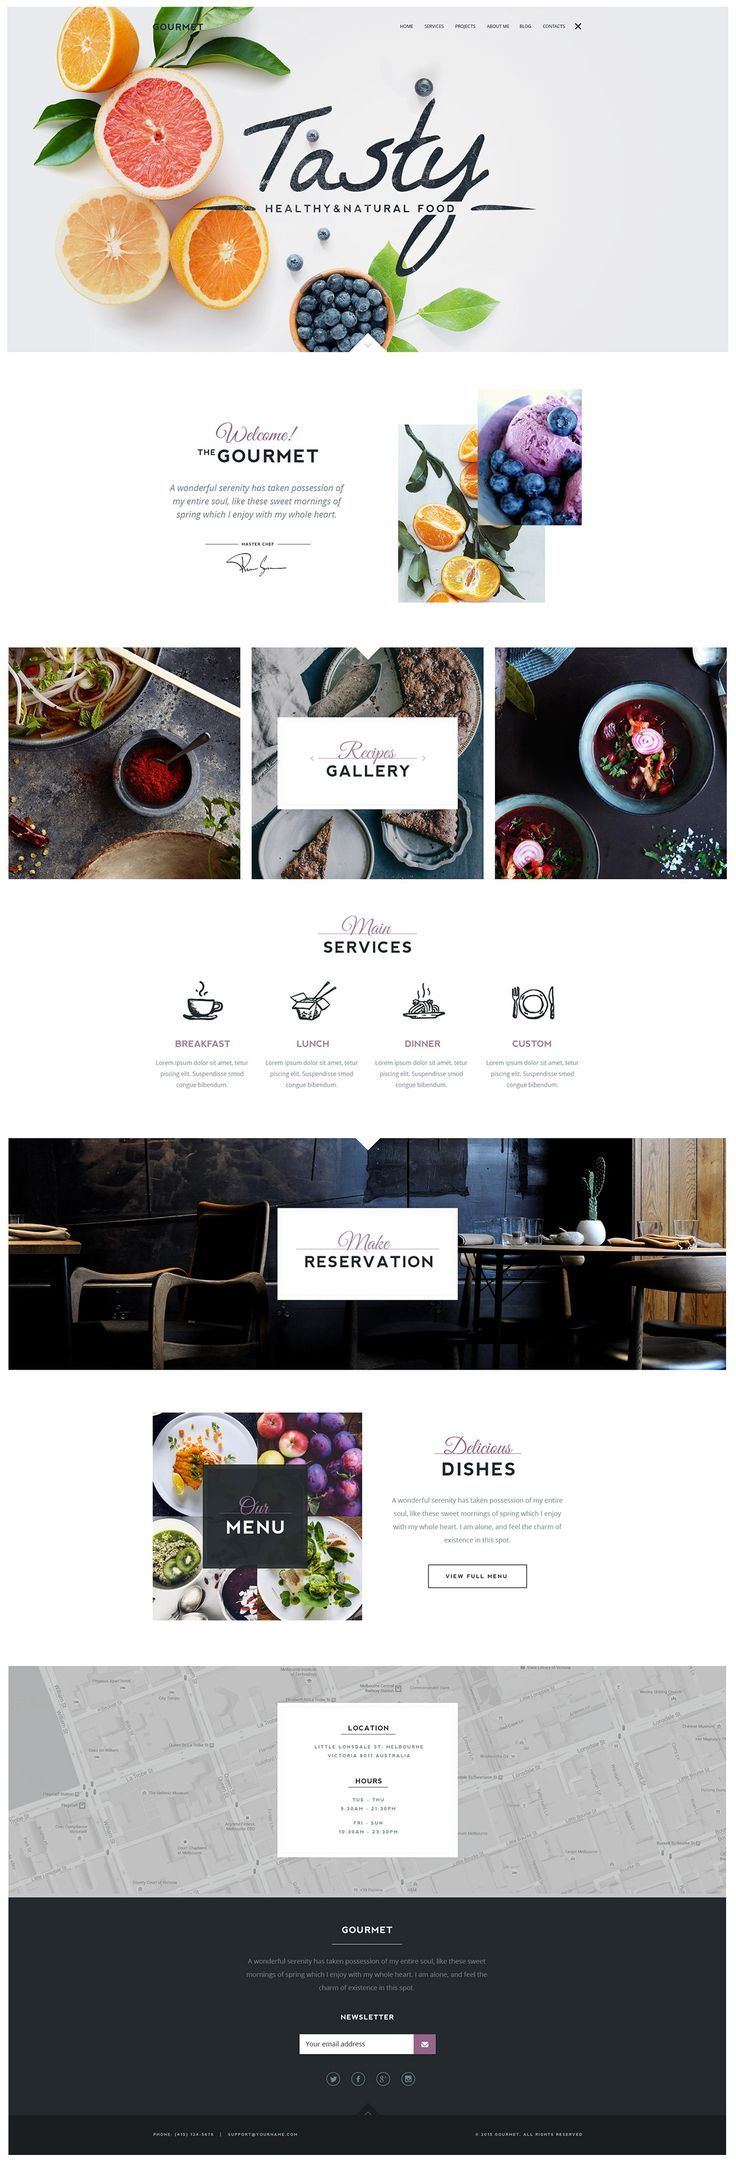 Gourmet - Restaurant & Cafe WordPress Theme